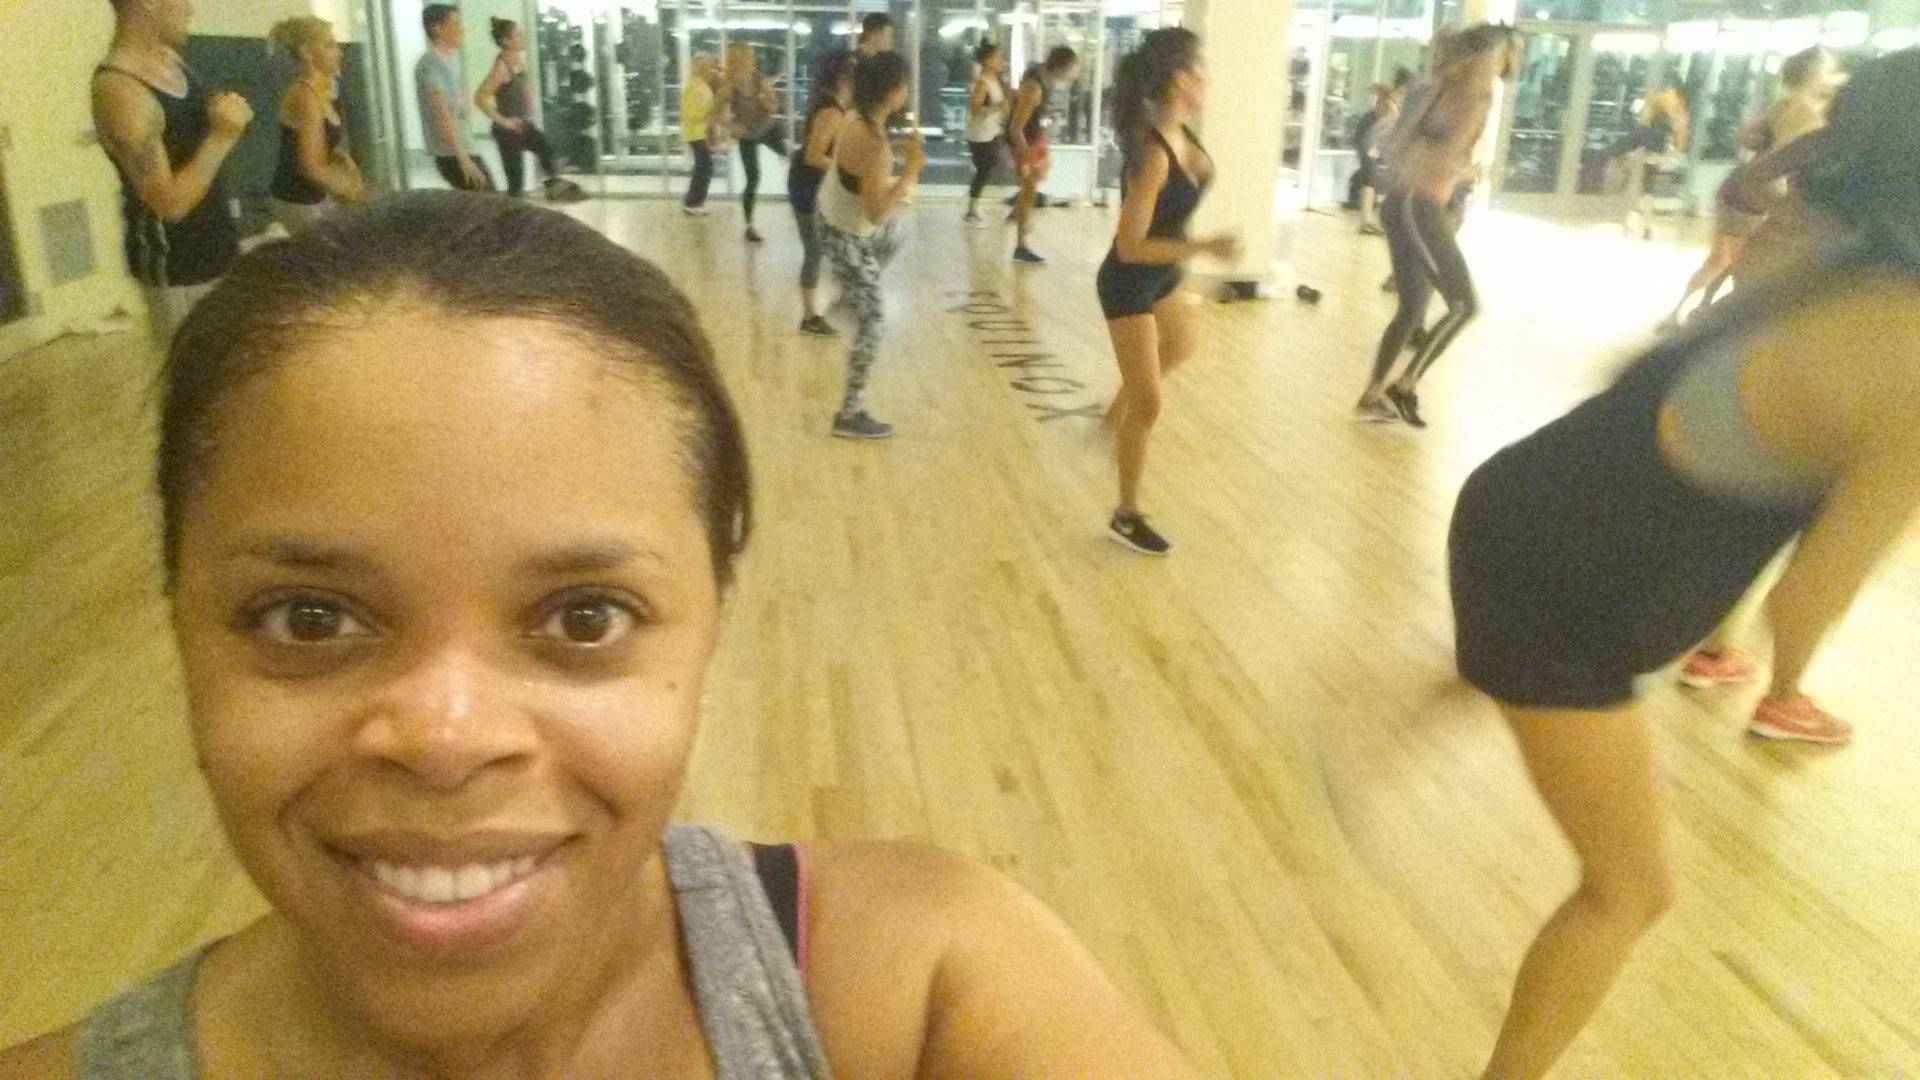 Kickboxing class. See that smile? Forced